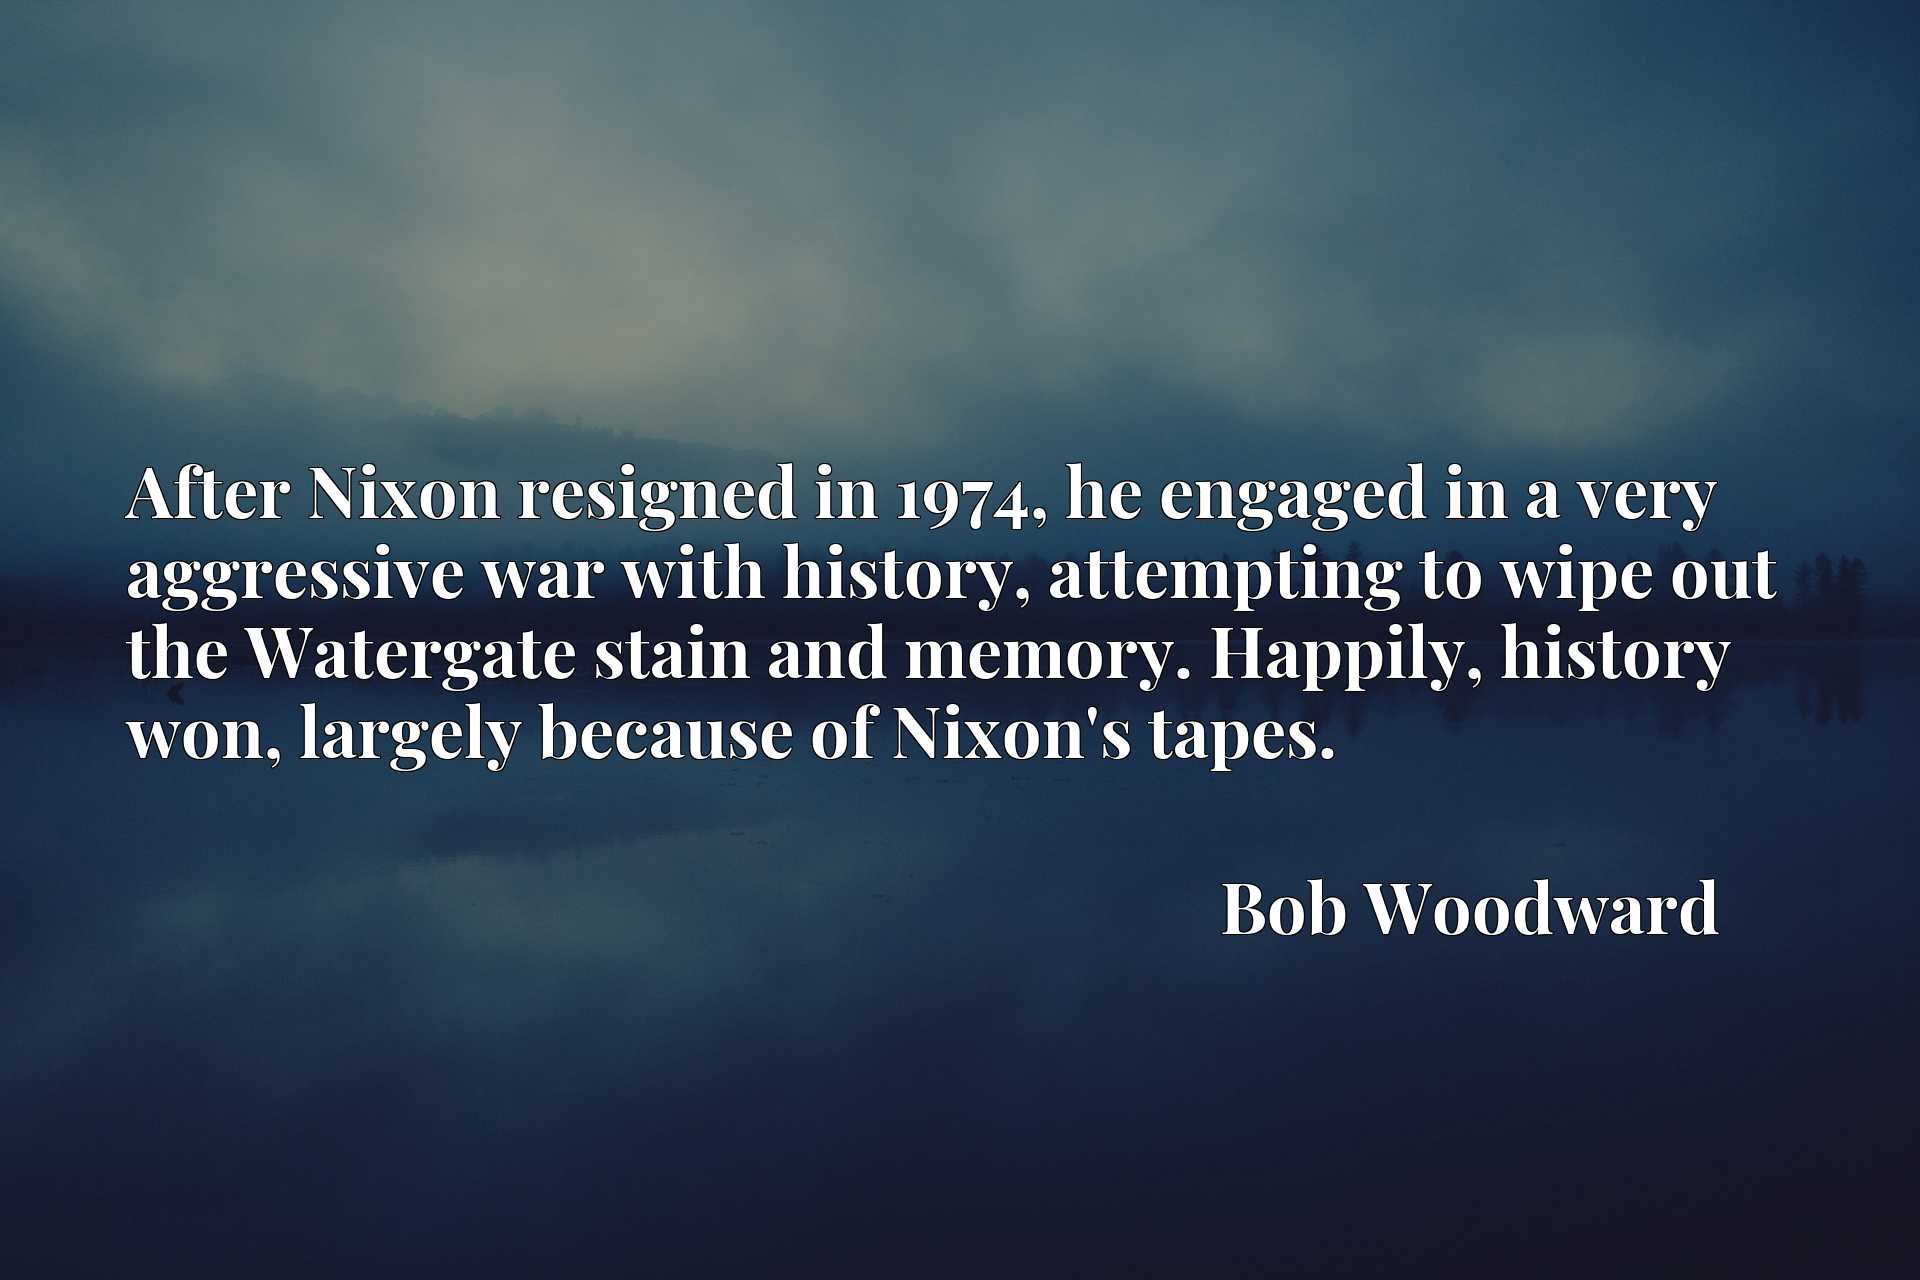 After Nixon resigned in 1974, he engaged in a very aggressive war with history, attempting to wipe out the Watergate stain and memory. Happily, history won, largely because of Nixon's tapes.